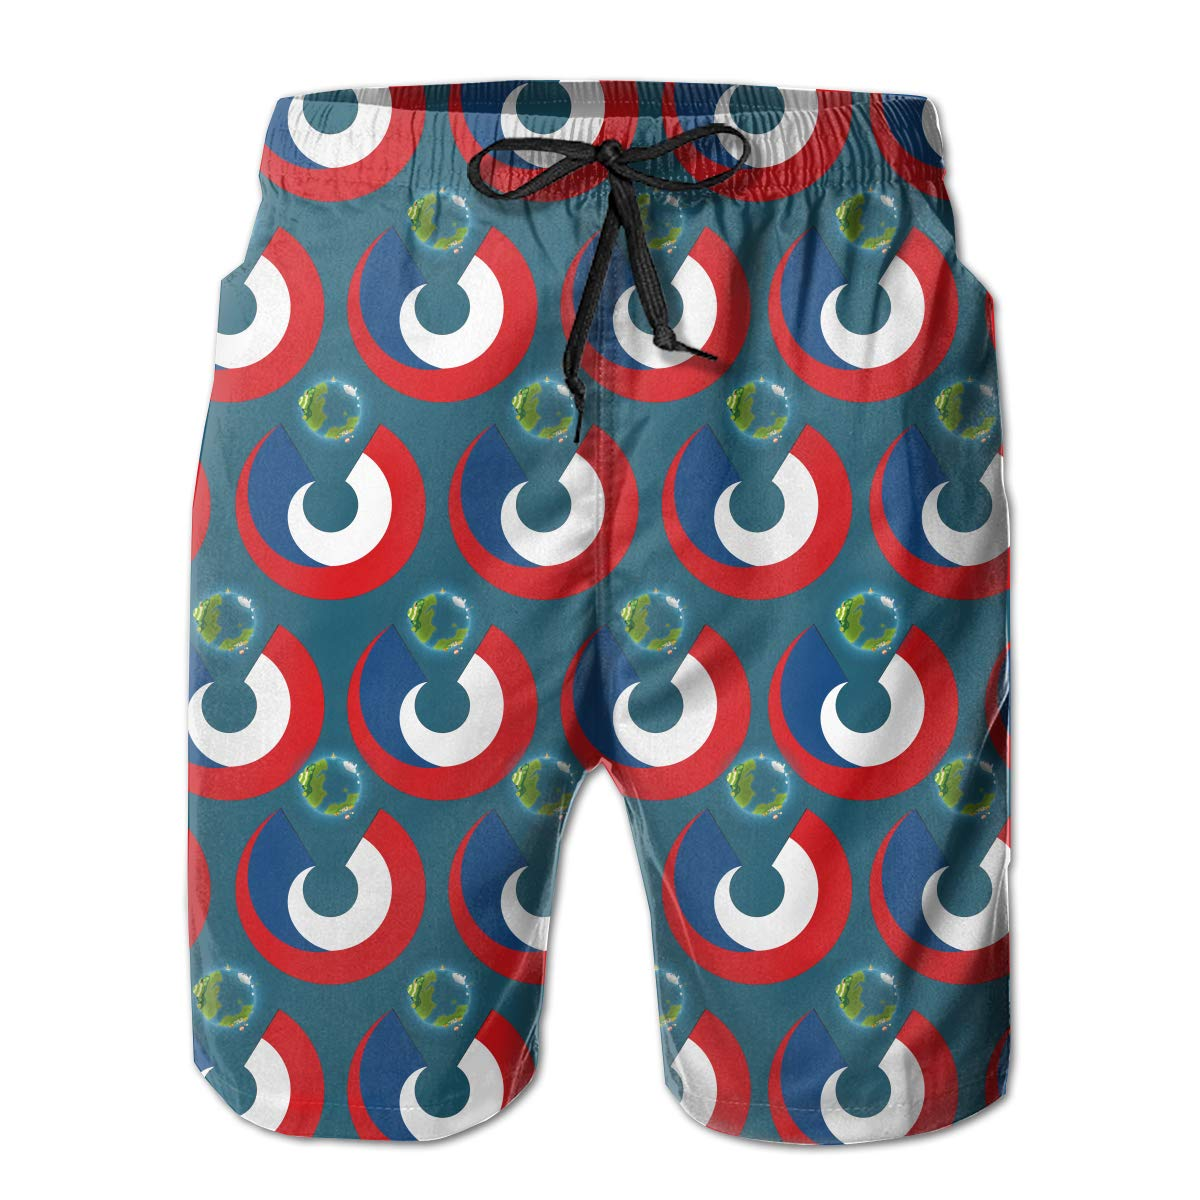 Mens Swim Trunks Czech Republic Flag Eat The Earth Quick Dry Beach Board Shorts with Mesh Lining